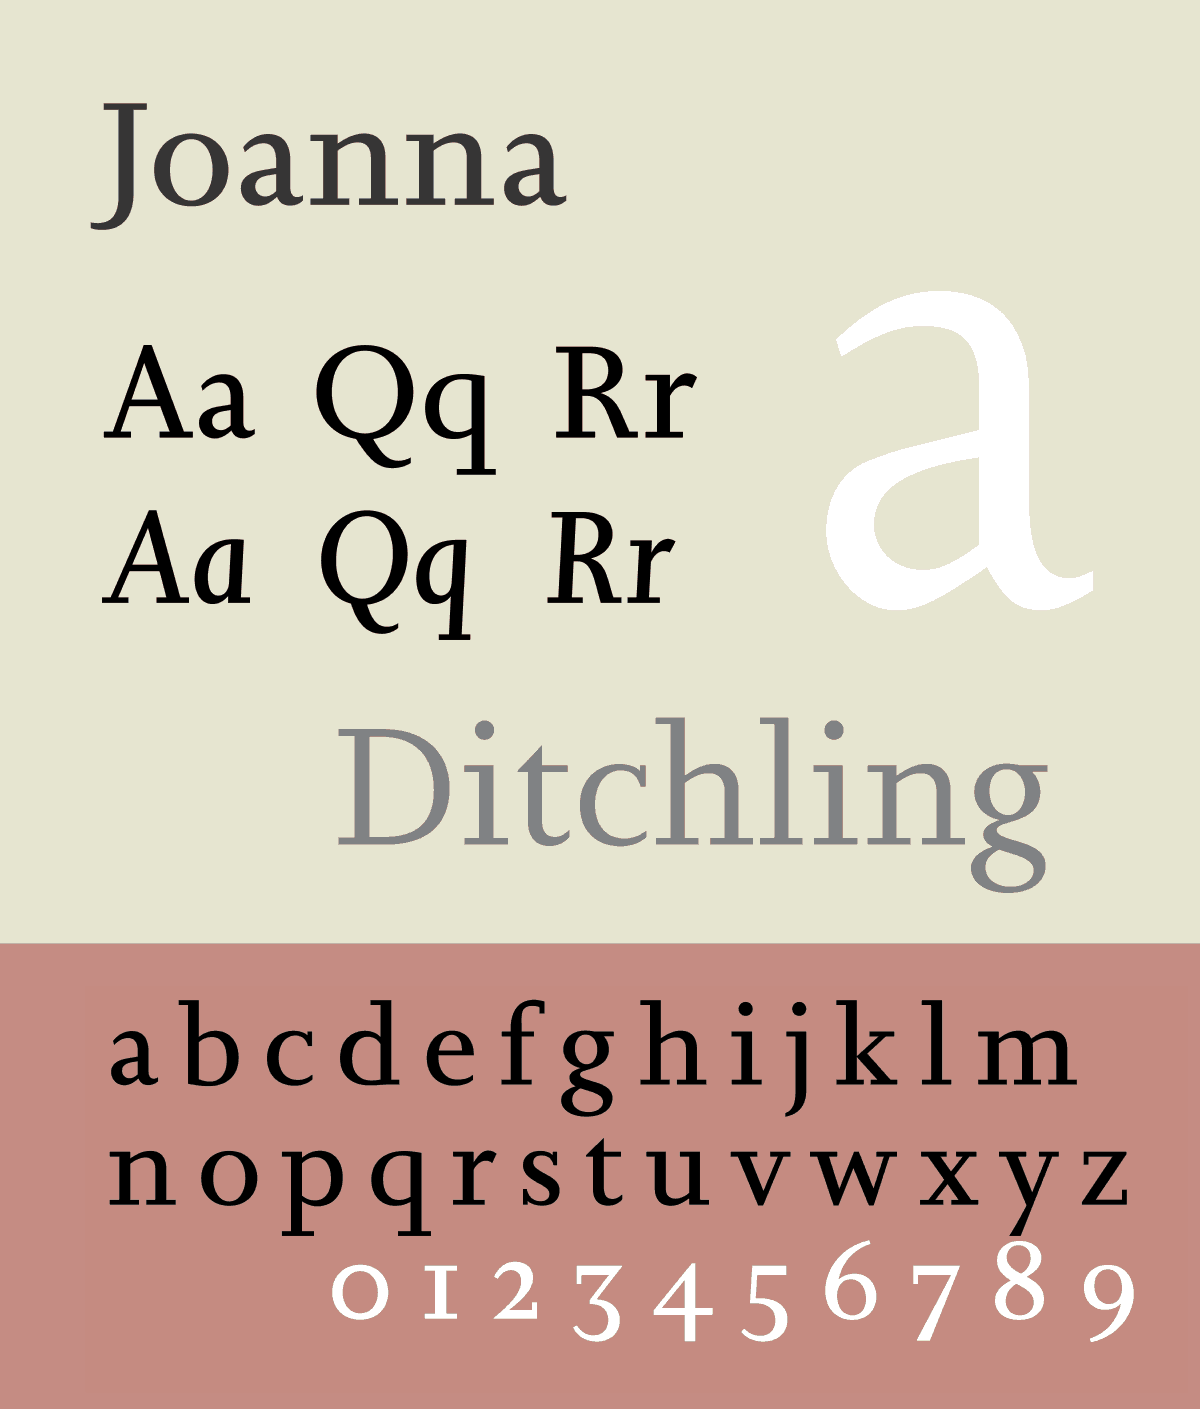 Download Joanna [1930 - Eric Gill] font (typeface)